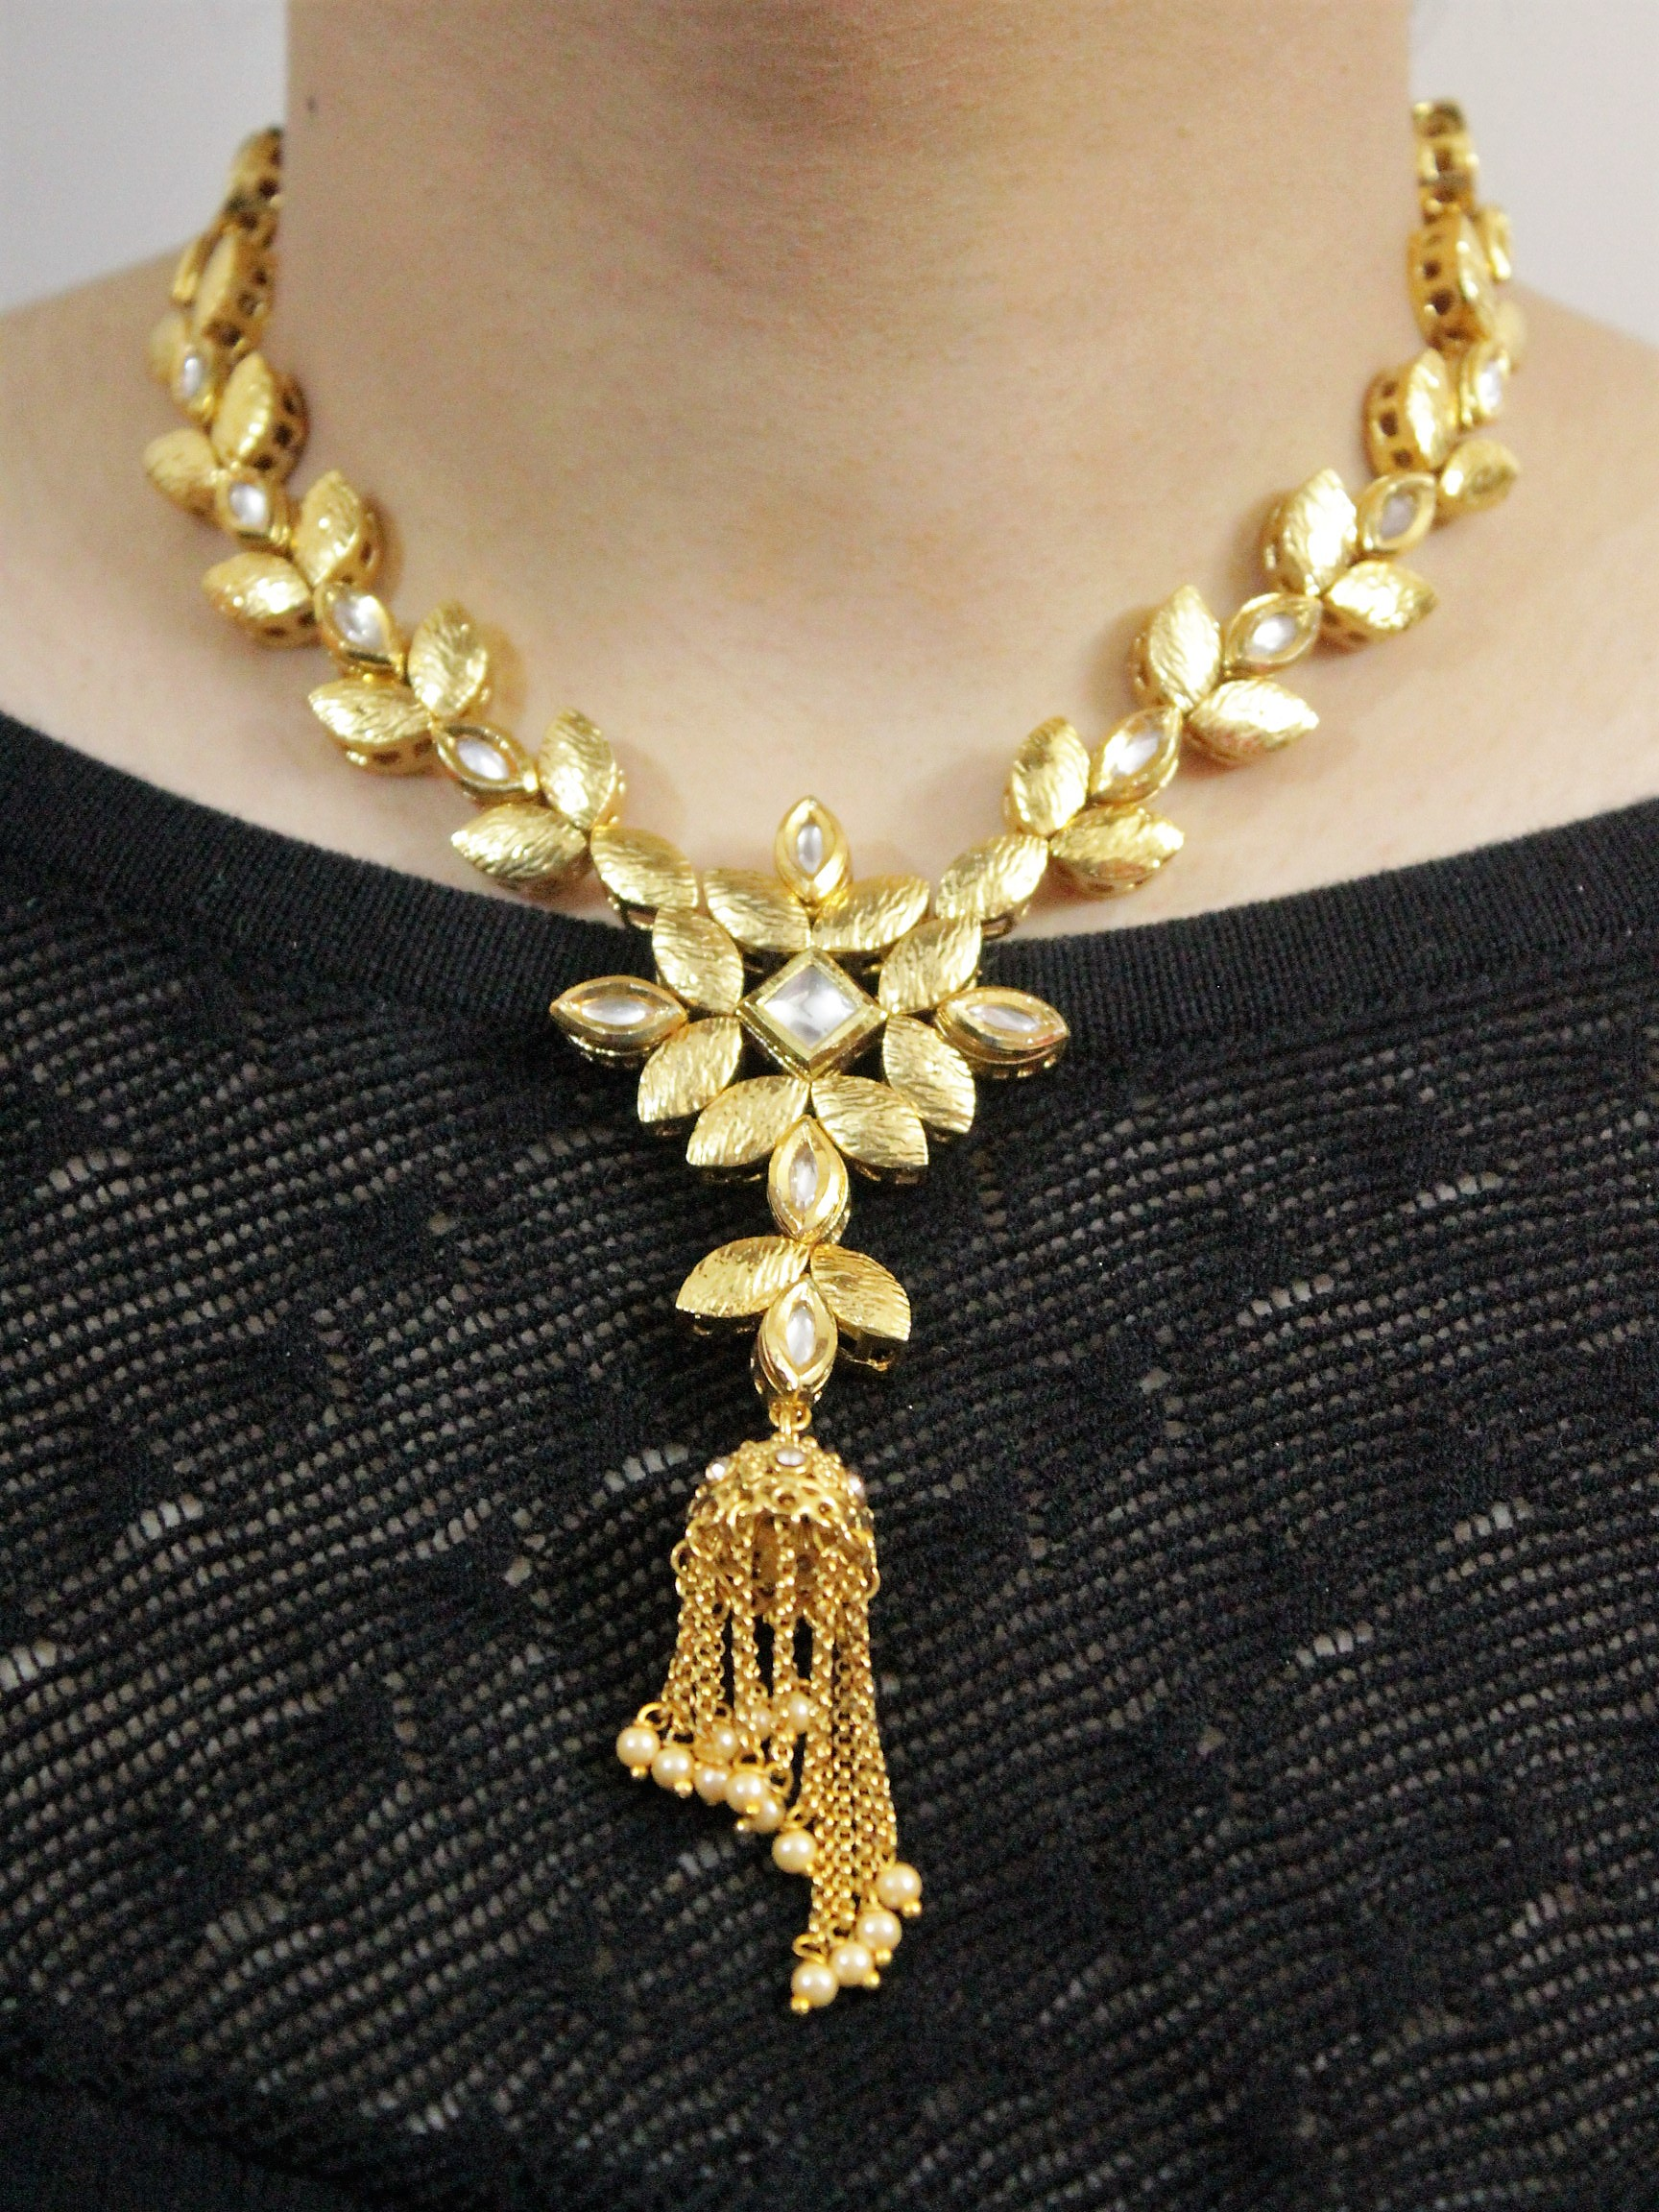 karwa chauth gifts for wife india  | IndiHaute | karwa chauth gifts for wife india online , karwa chauth gifts for wife india on husband , karwa chauth gifts for wife india on law , karwa chauth gifts for wife india mother in law  - GL76983